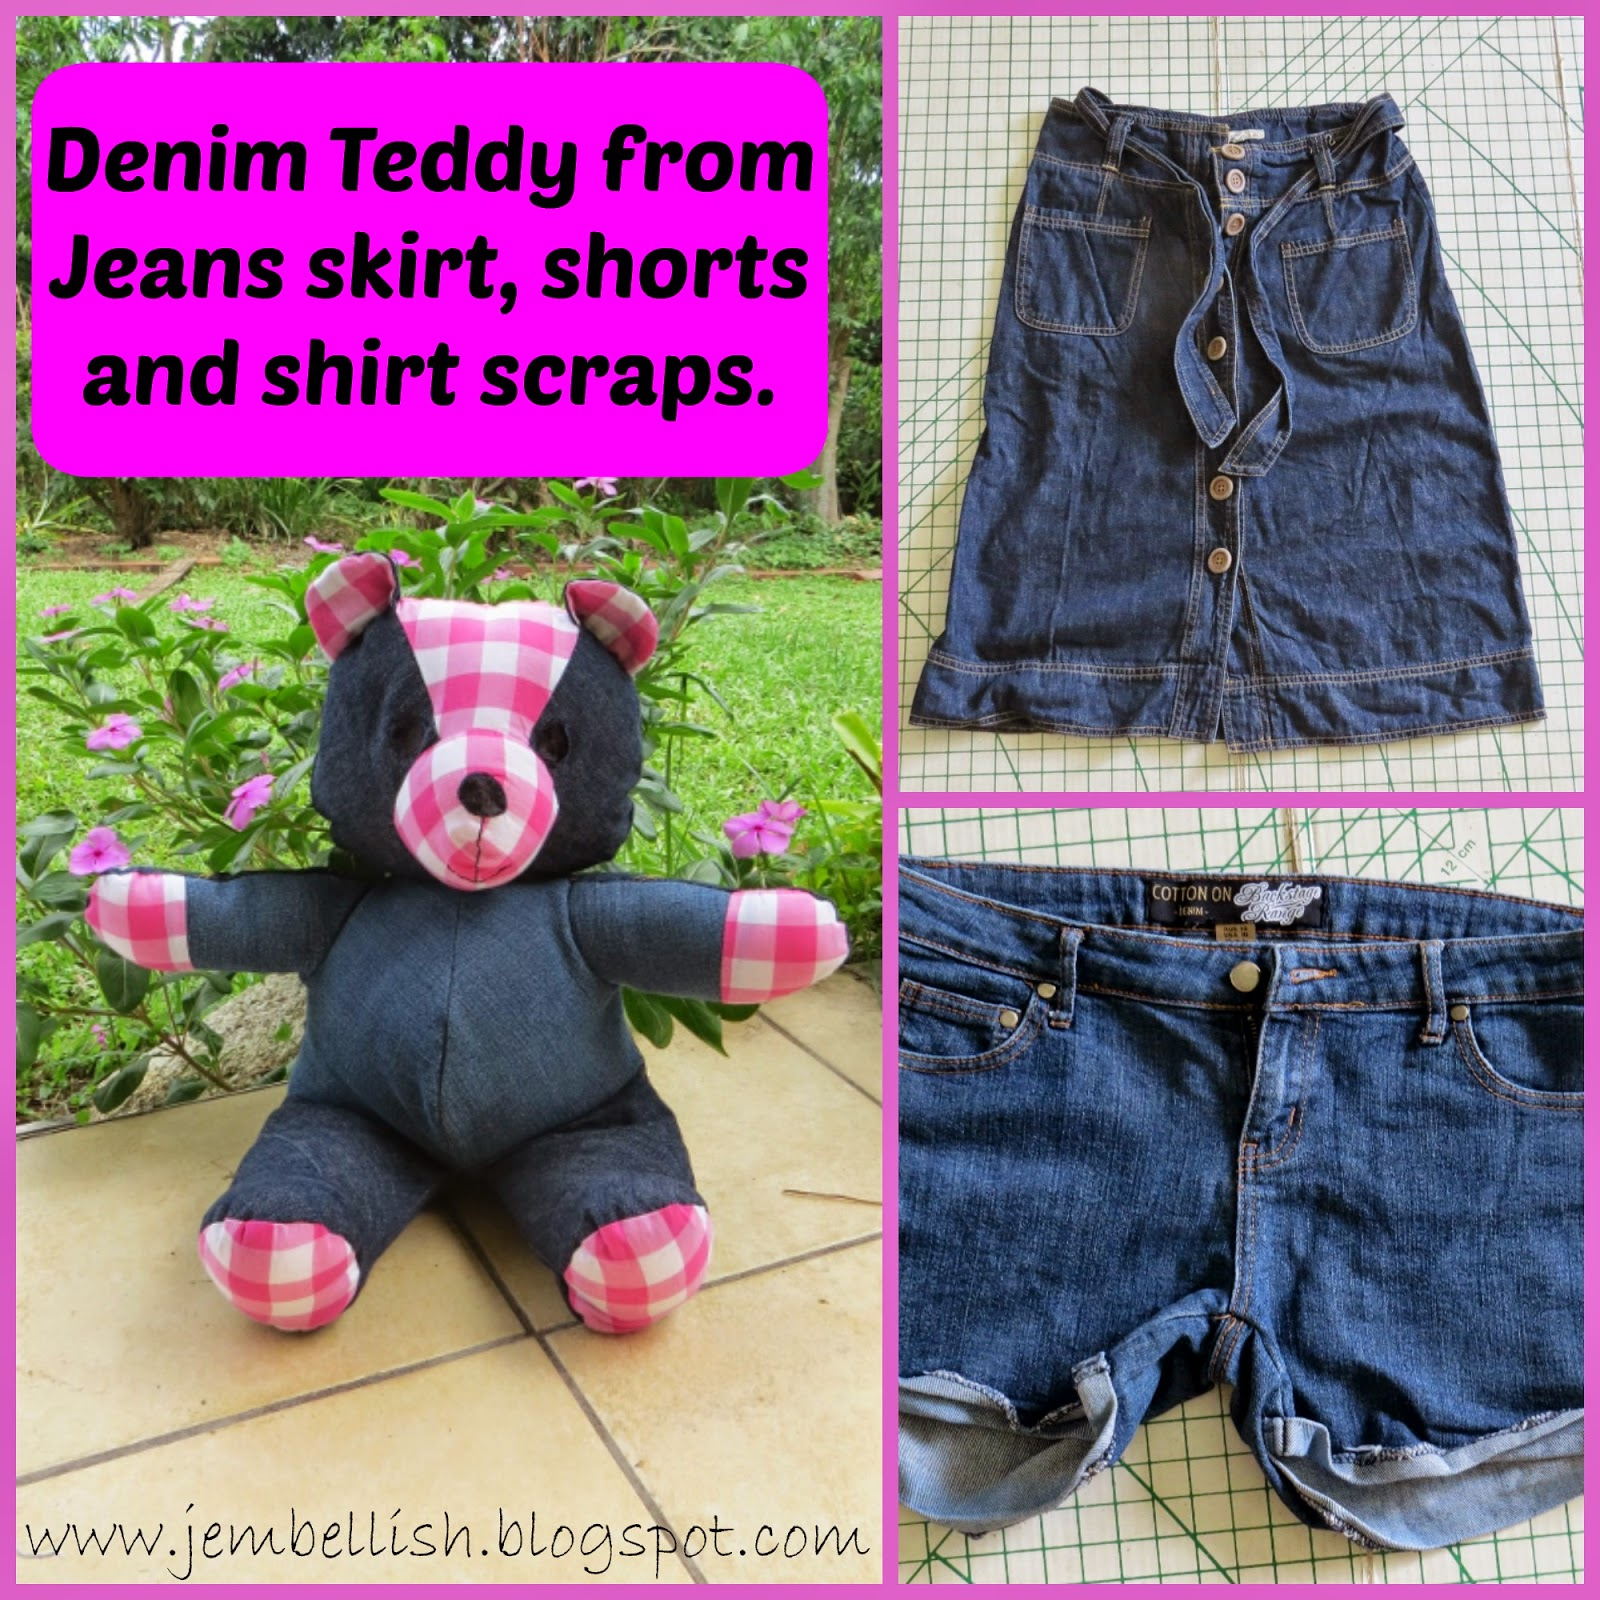 Denim Teddy Bear from Jeans skirt and shorts